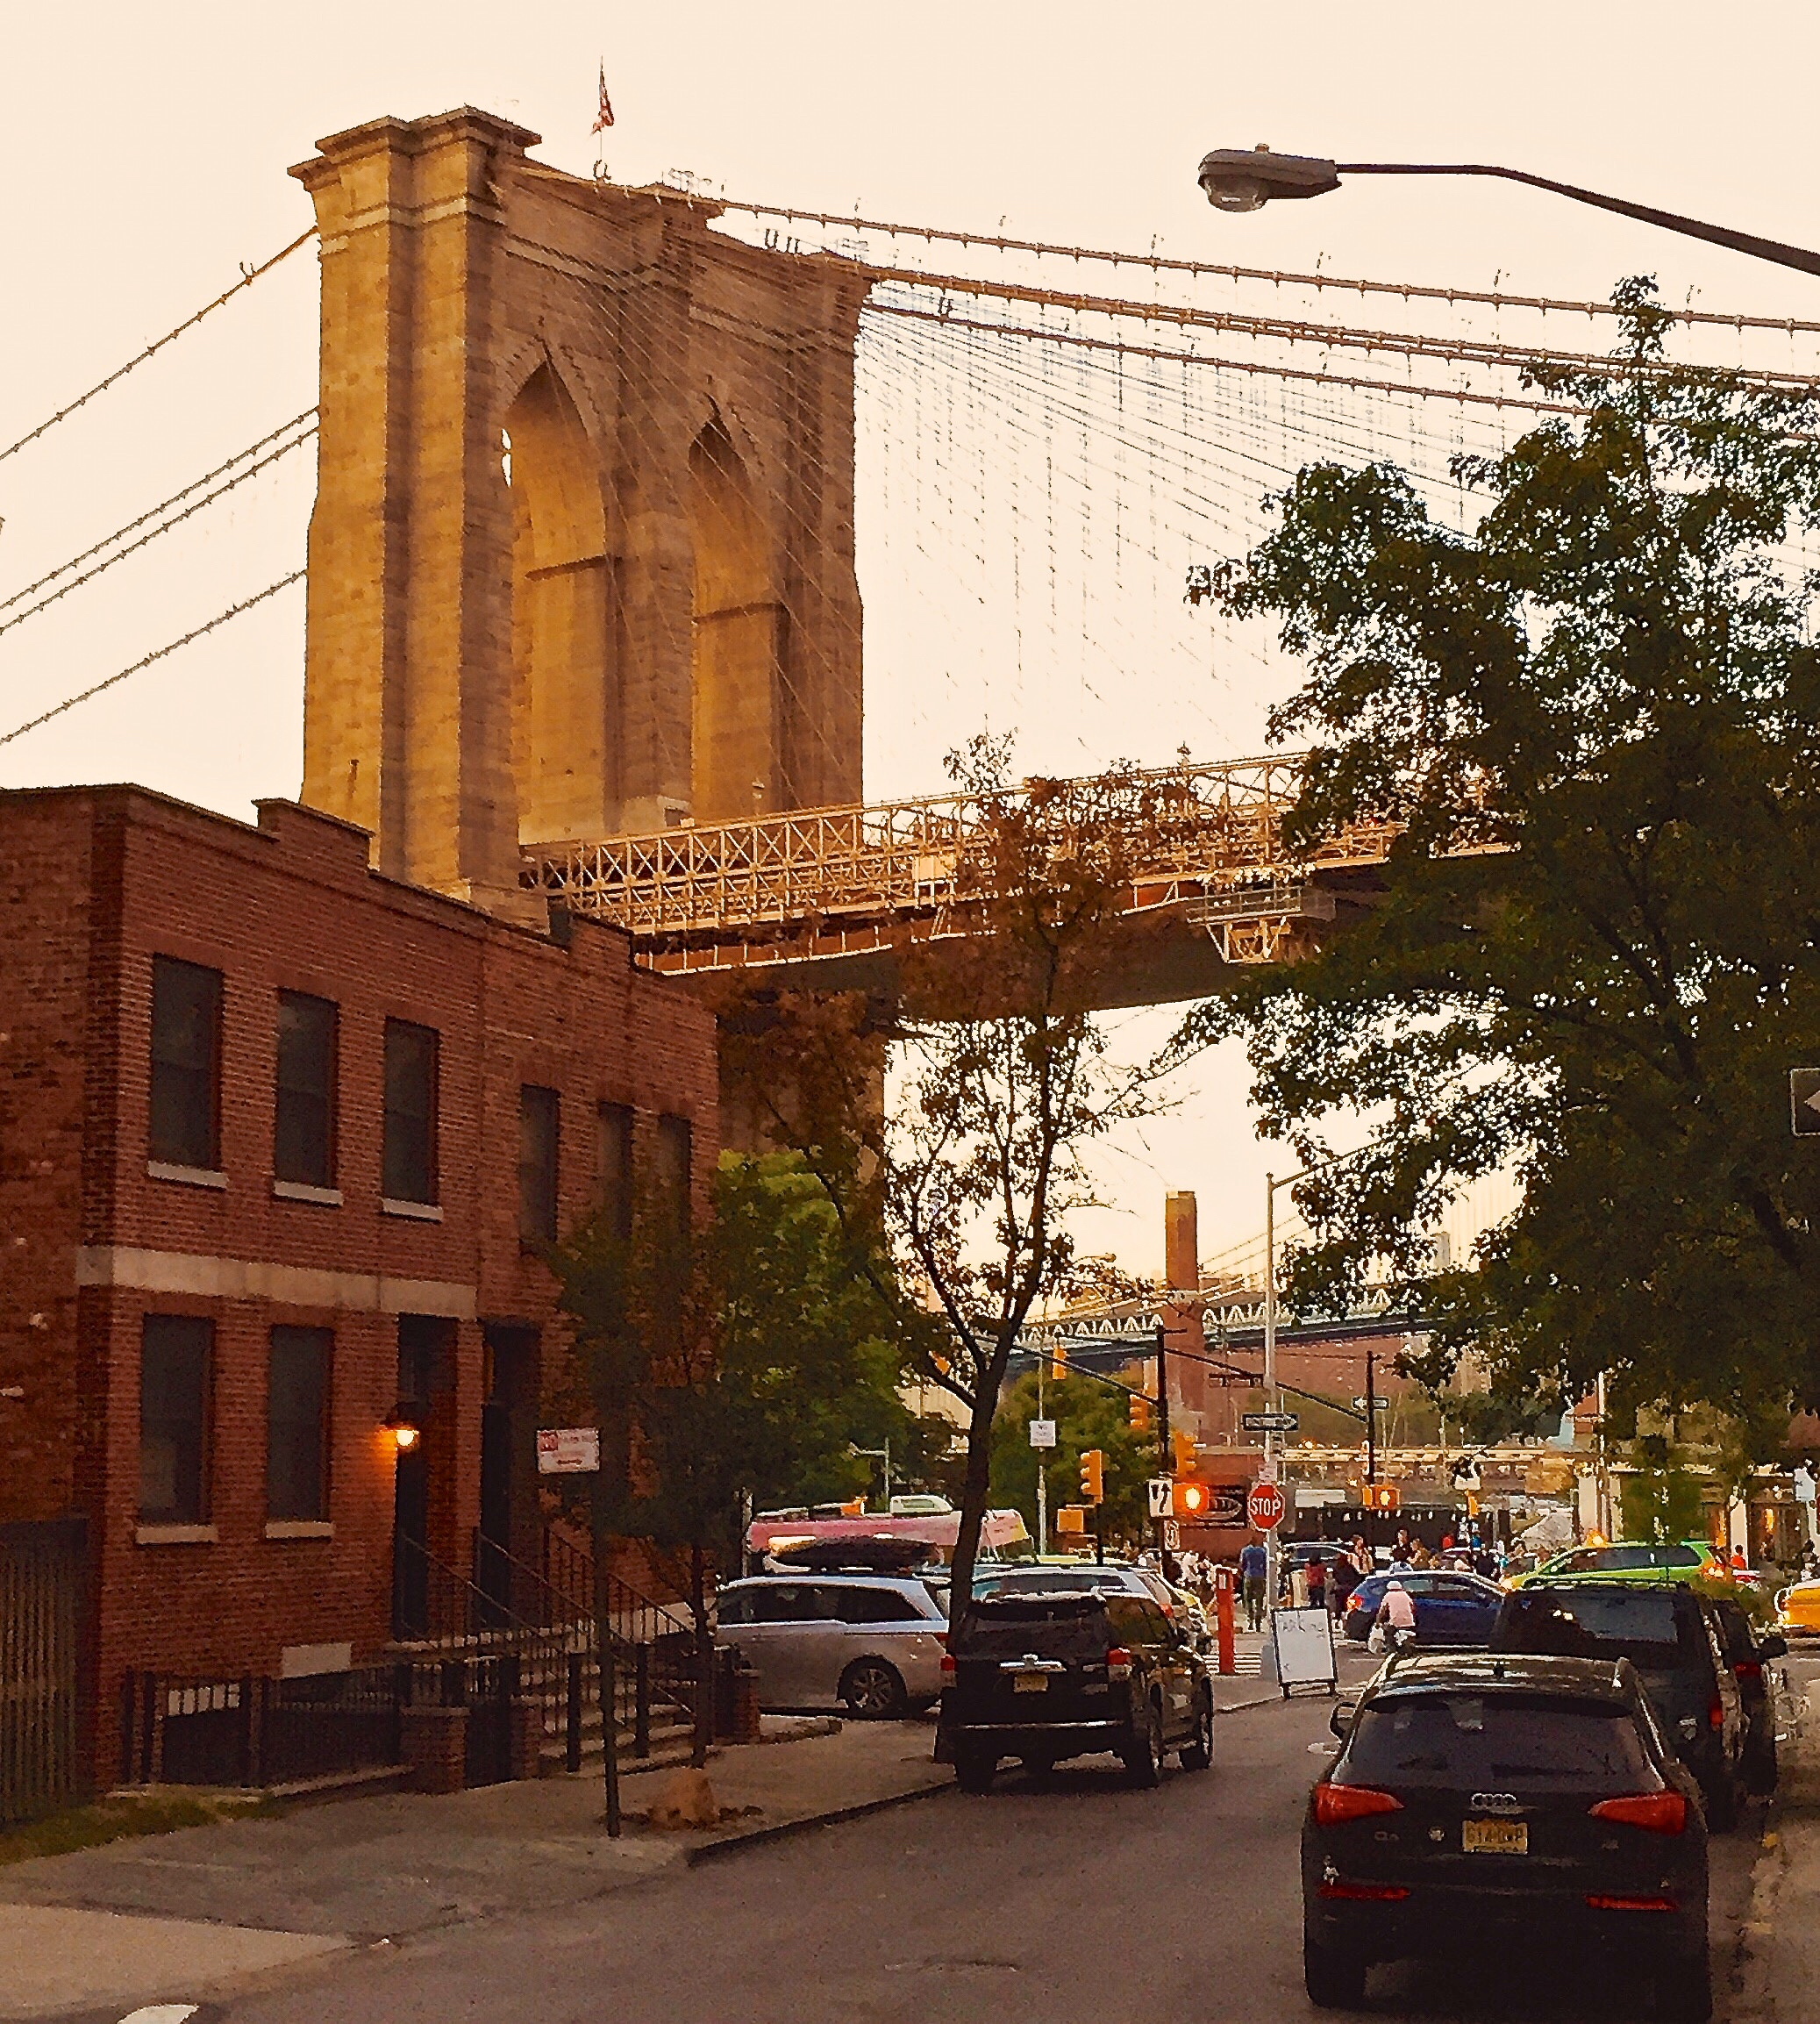 @ Brooklyn Bridge_Everit Street__.JPG